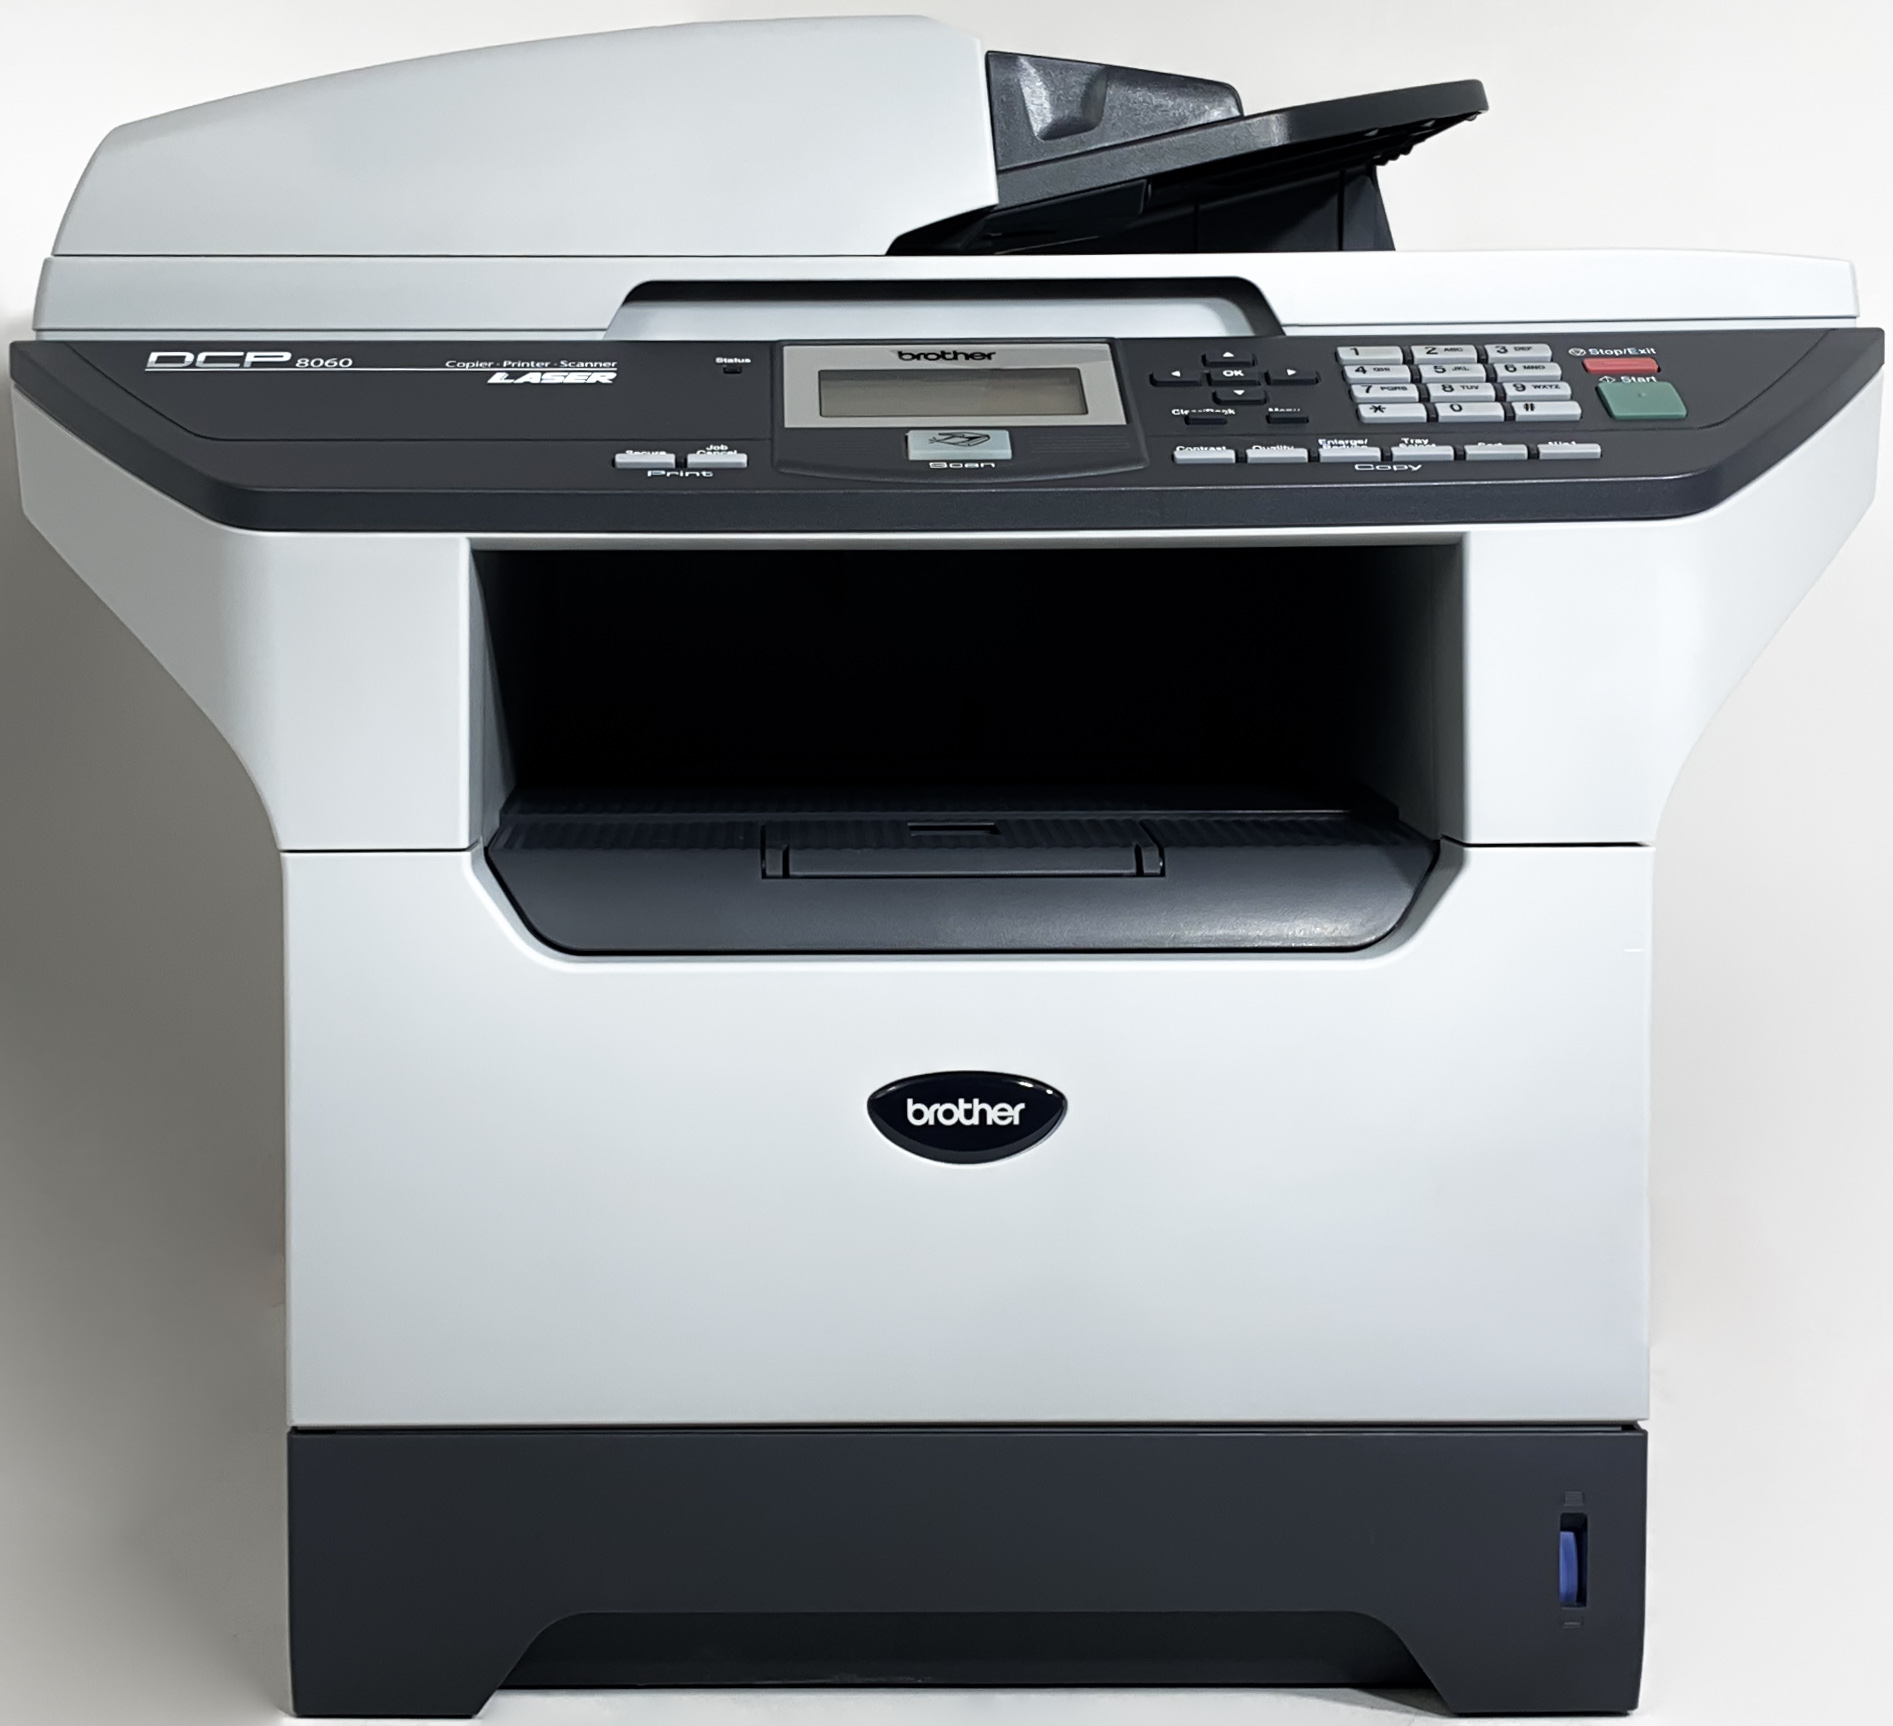 Brother DCP-8060 All-In-One Laser Printer - White Spider ...